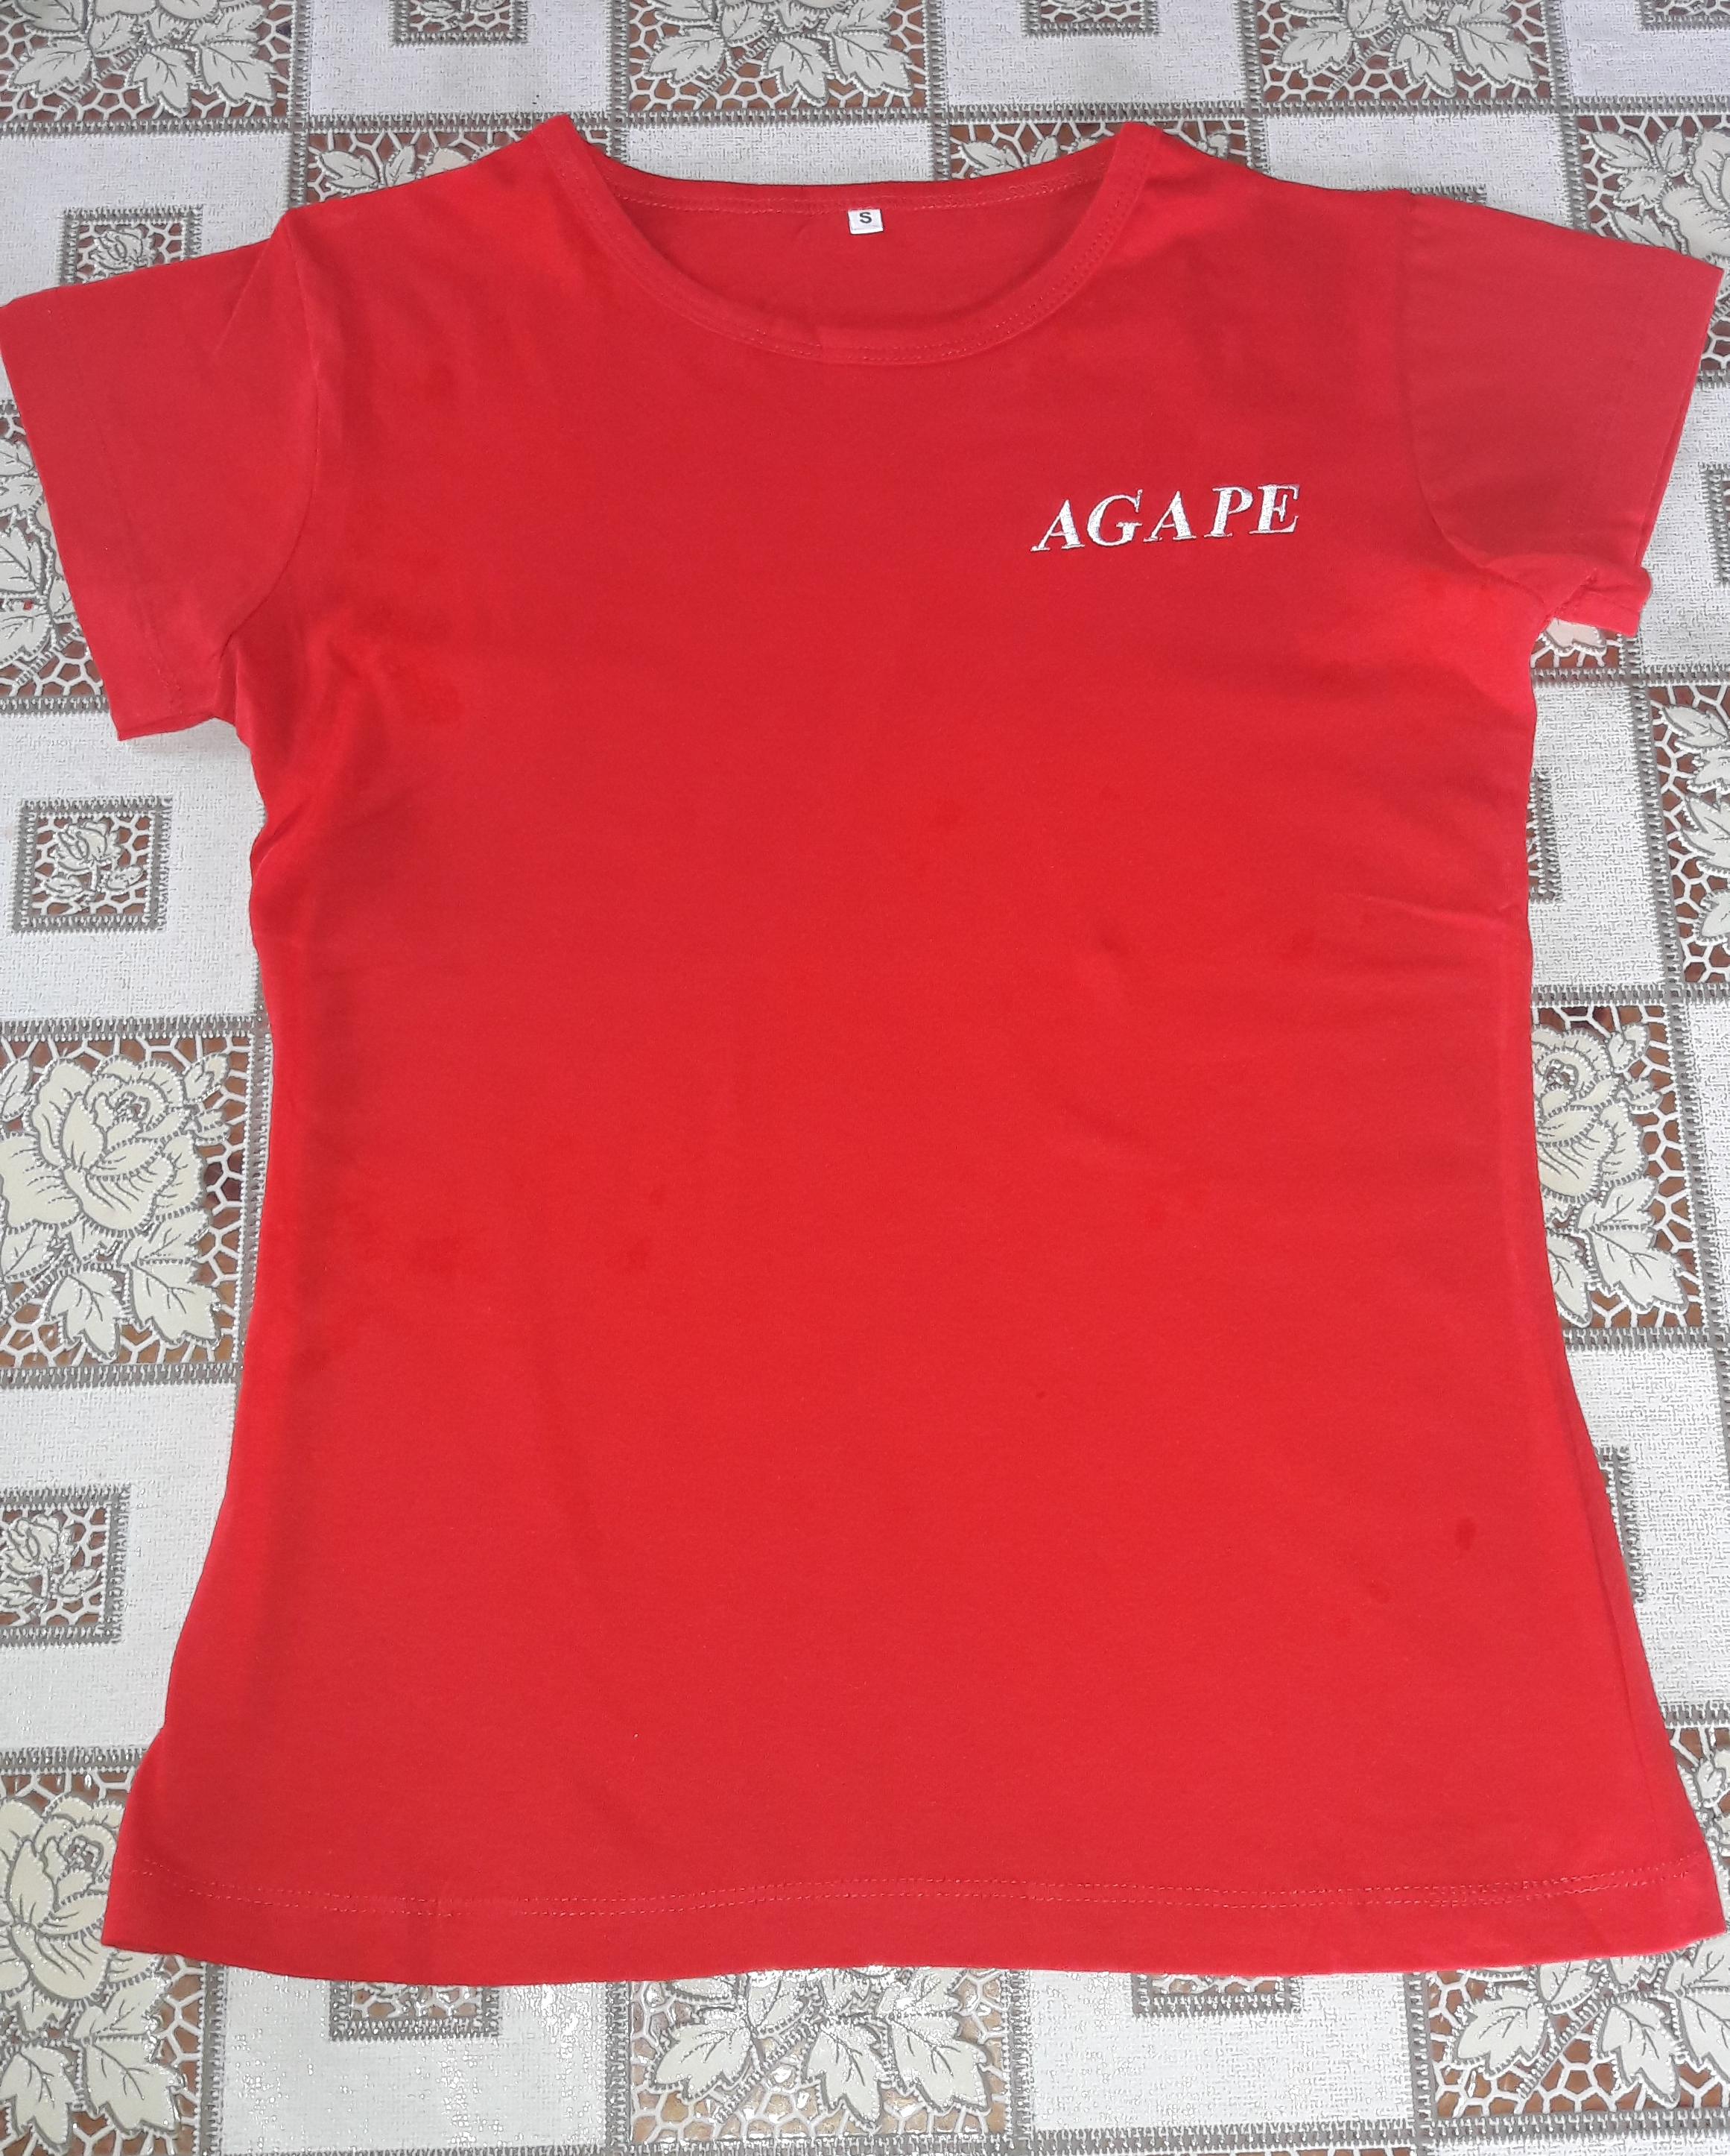 #tx 170021 aGAPE t-sHIRT (RED)  dONATION: $20 usd